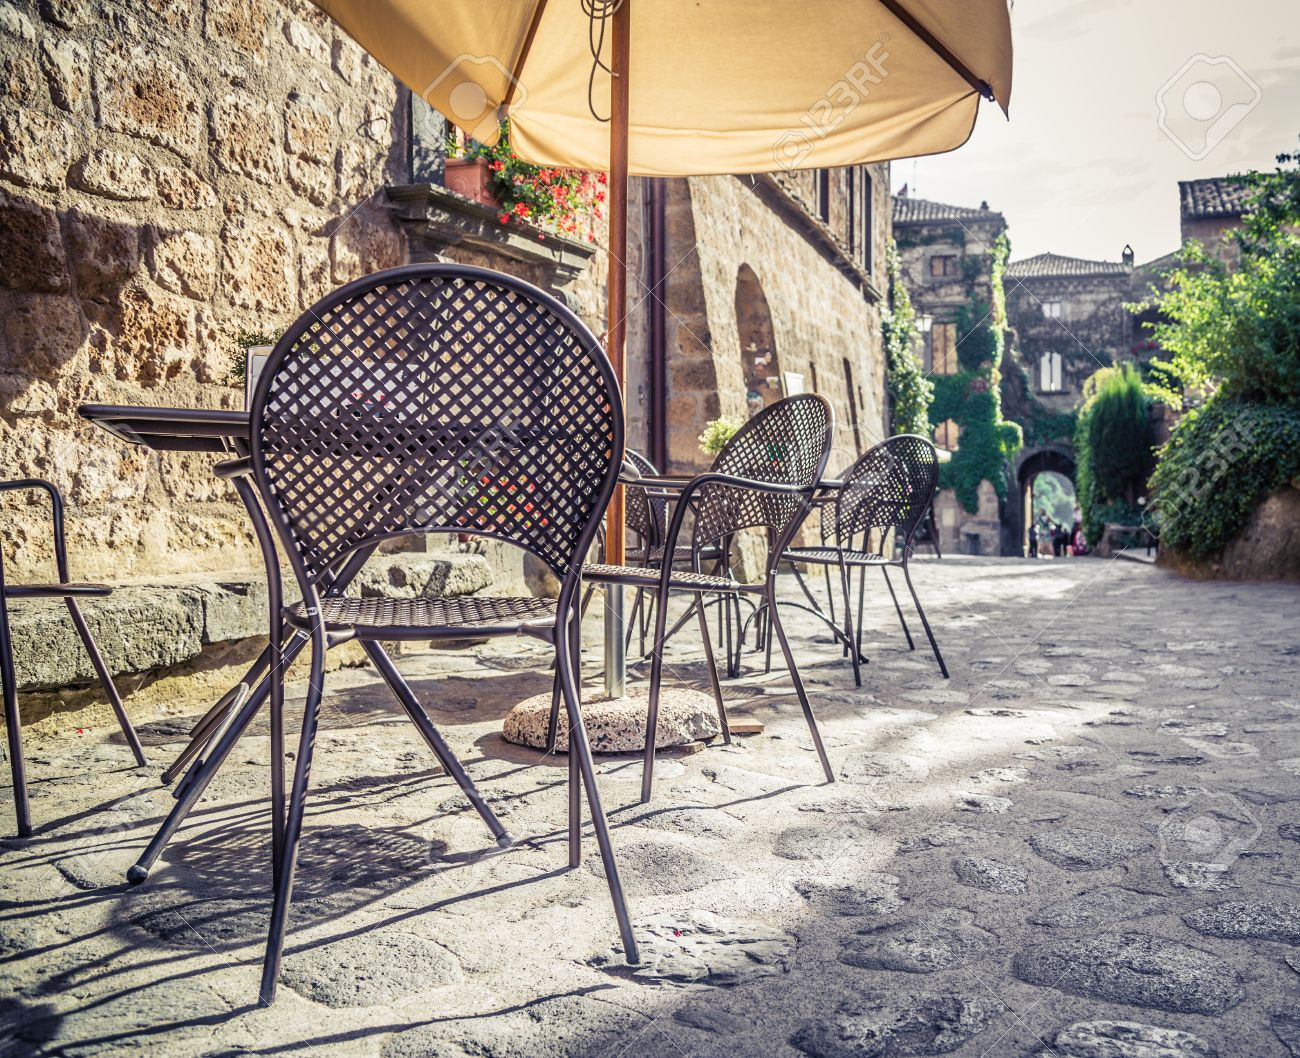 Vintage cafe table and chairs - Cafe With Tables And Chairs In An Old Street In Europe With Retro Vintage Instagram Style